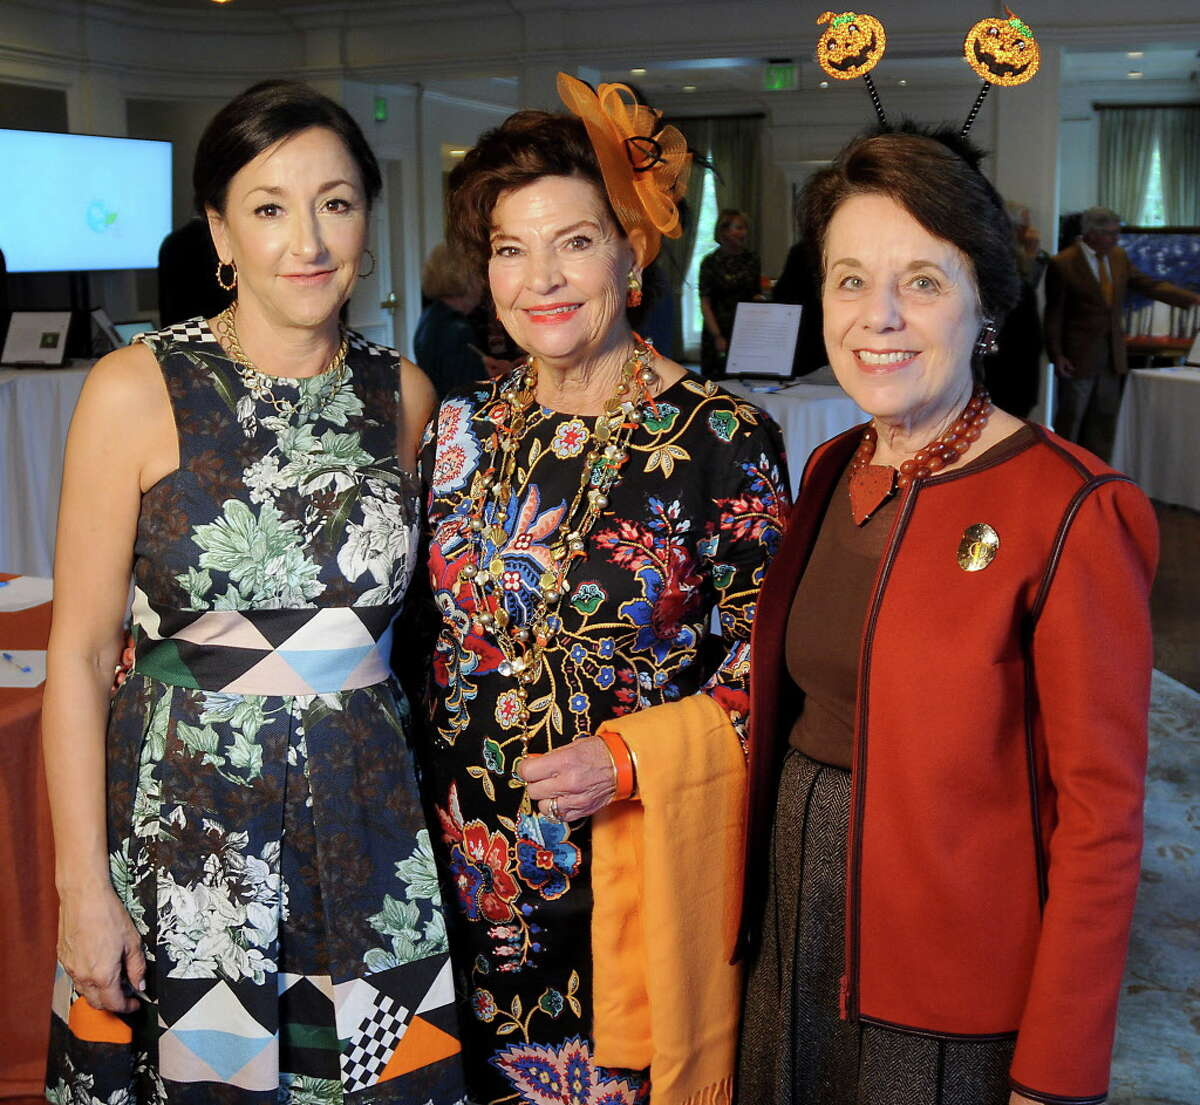 From left: Chairs Mary Beth Arcidiacono, Laura Wheless and Ginni Mithoff at he Houston Botanic Garden's Botanical Beginnings Luncheon at the River Oaks Country Club Tuesday Oct. 31, 2017.(Dave Rossman Photo)